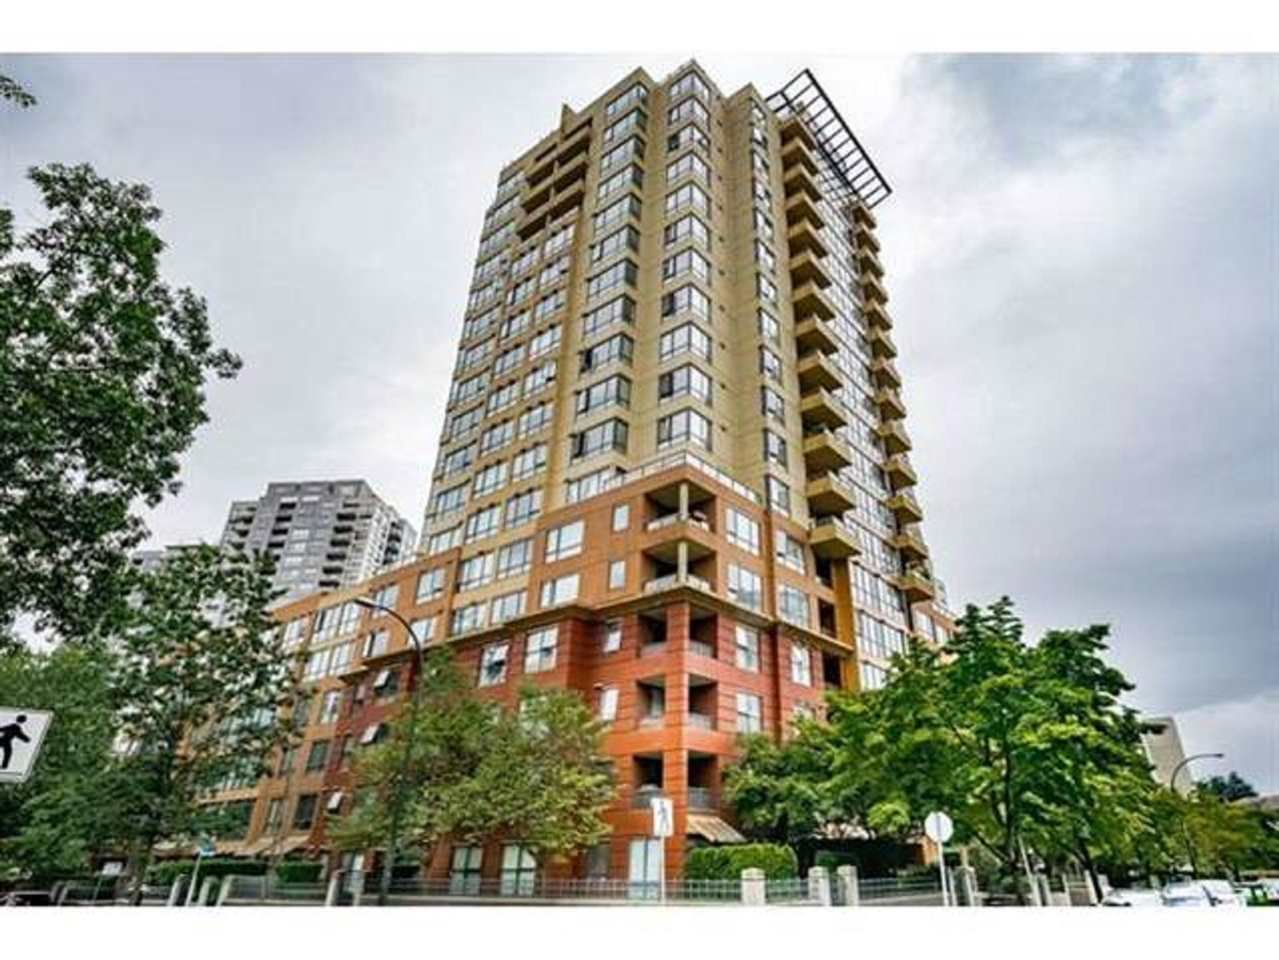 """Main Photo: 1507 5288 MELBOURNE Street in Vancouver: Collingwood VE Condo for sale in """"EMERALD PARK PLACE"""" (Vancouver East)  : MLS®# R2473828"""